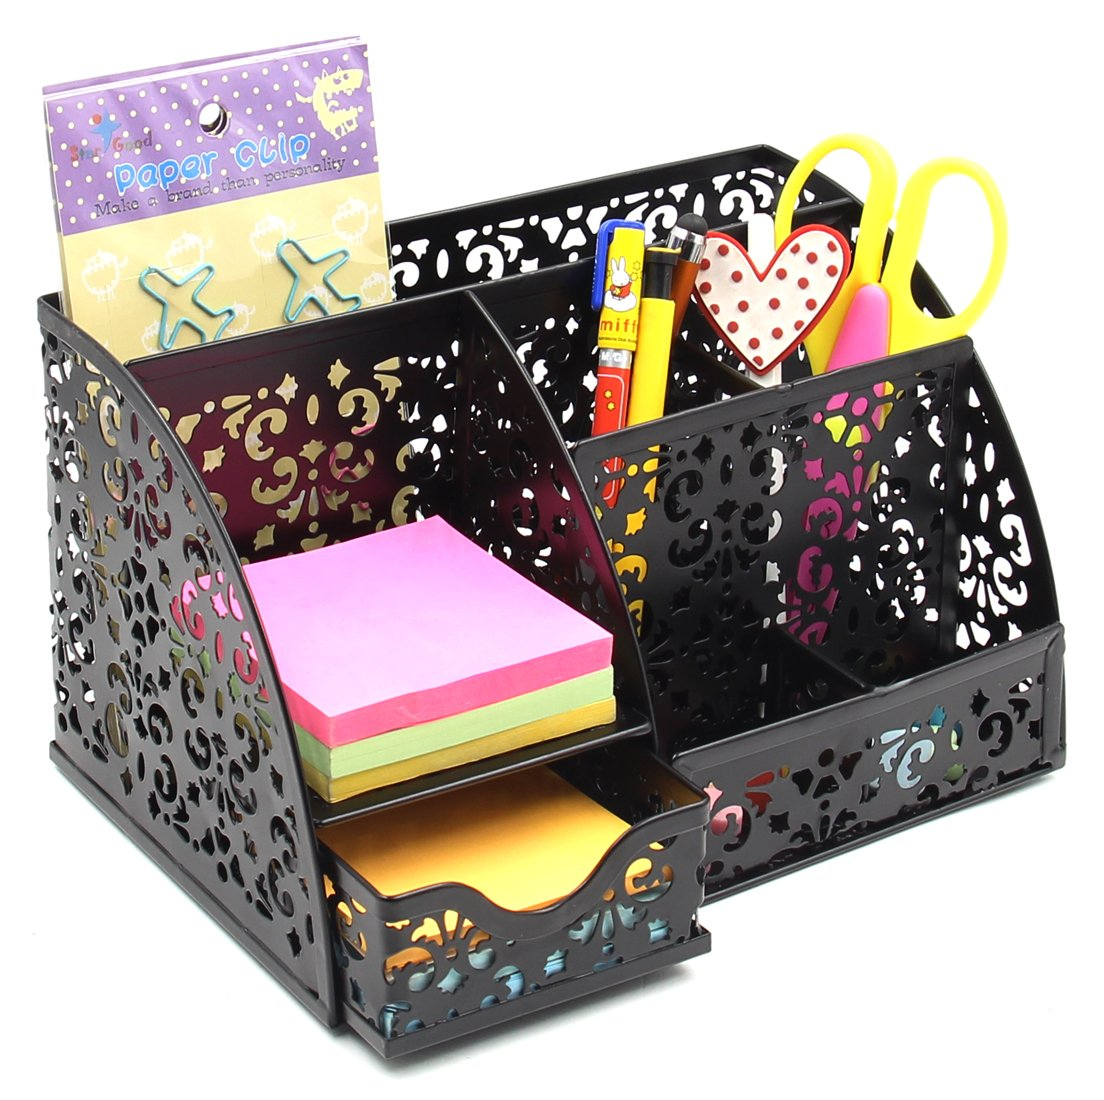 EasyPAG Mesh Desk Organizer Pattern Decoration 6 Compartment with Drawer,Black